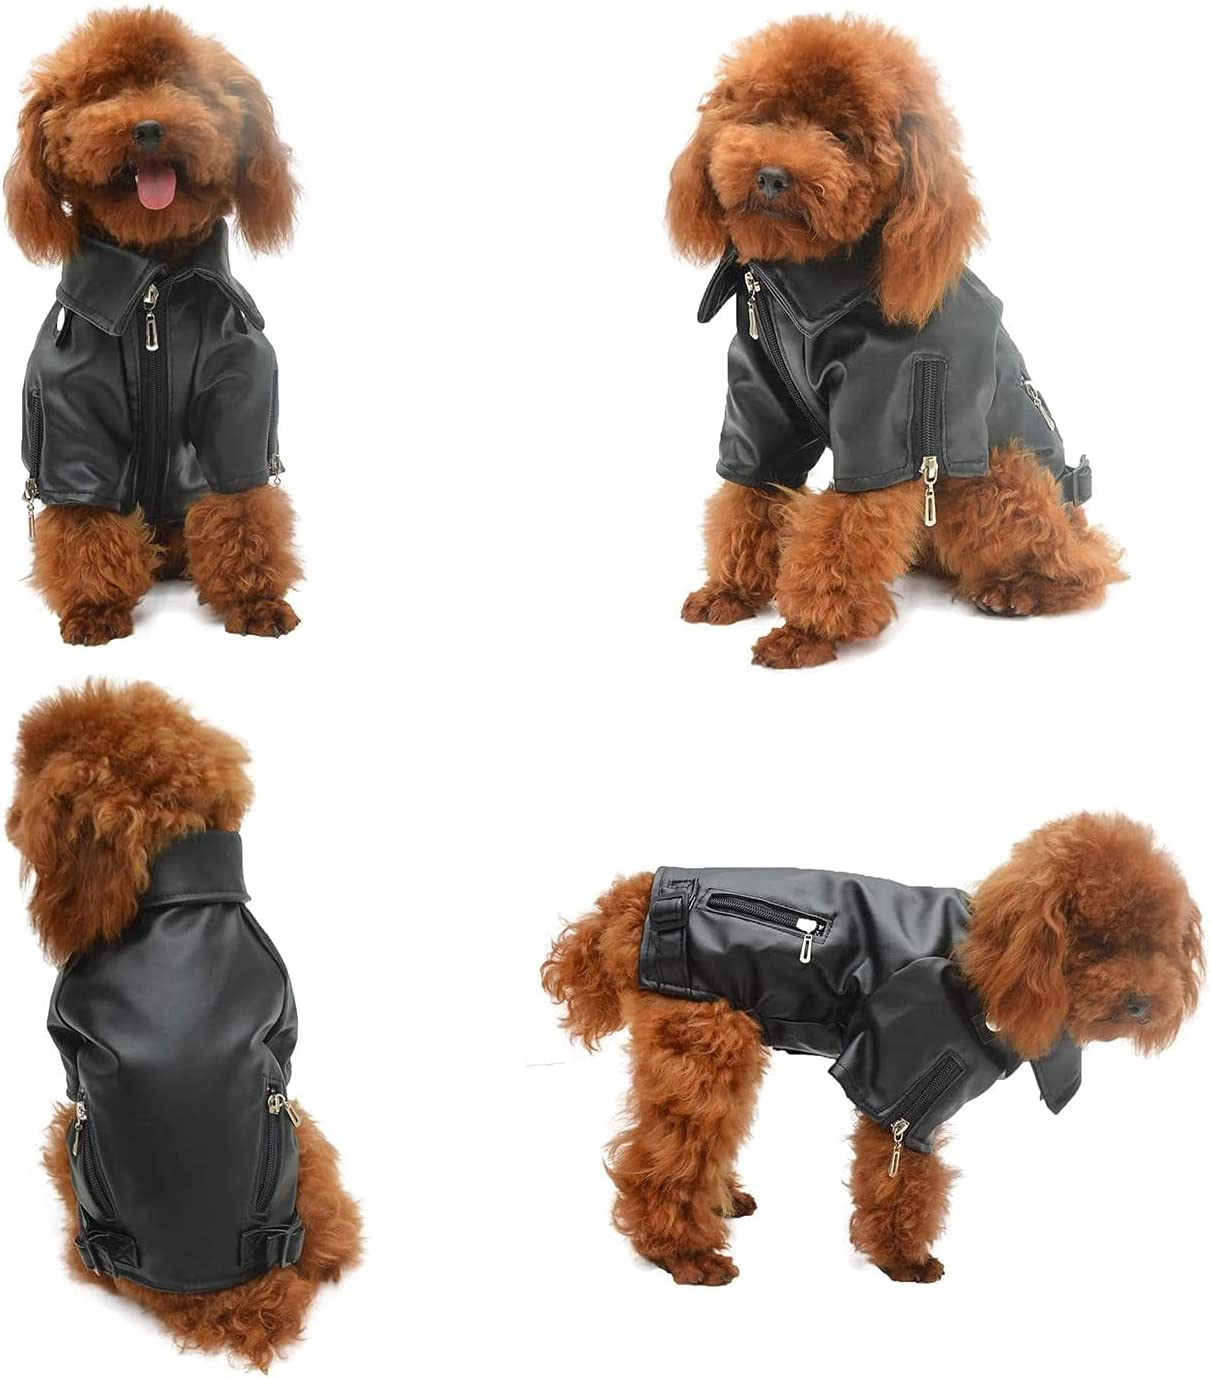 YOHOU Dog Leather OFFicial Genuine Free Shipping mail order Jacket Cold Weather Dogs Motorcycle Windproof